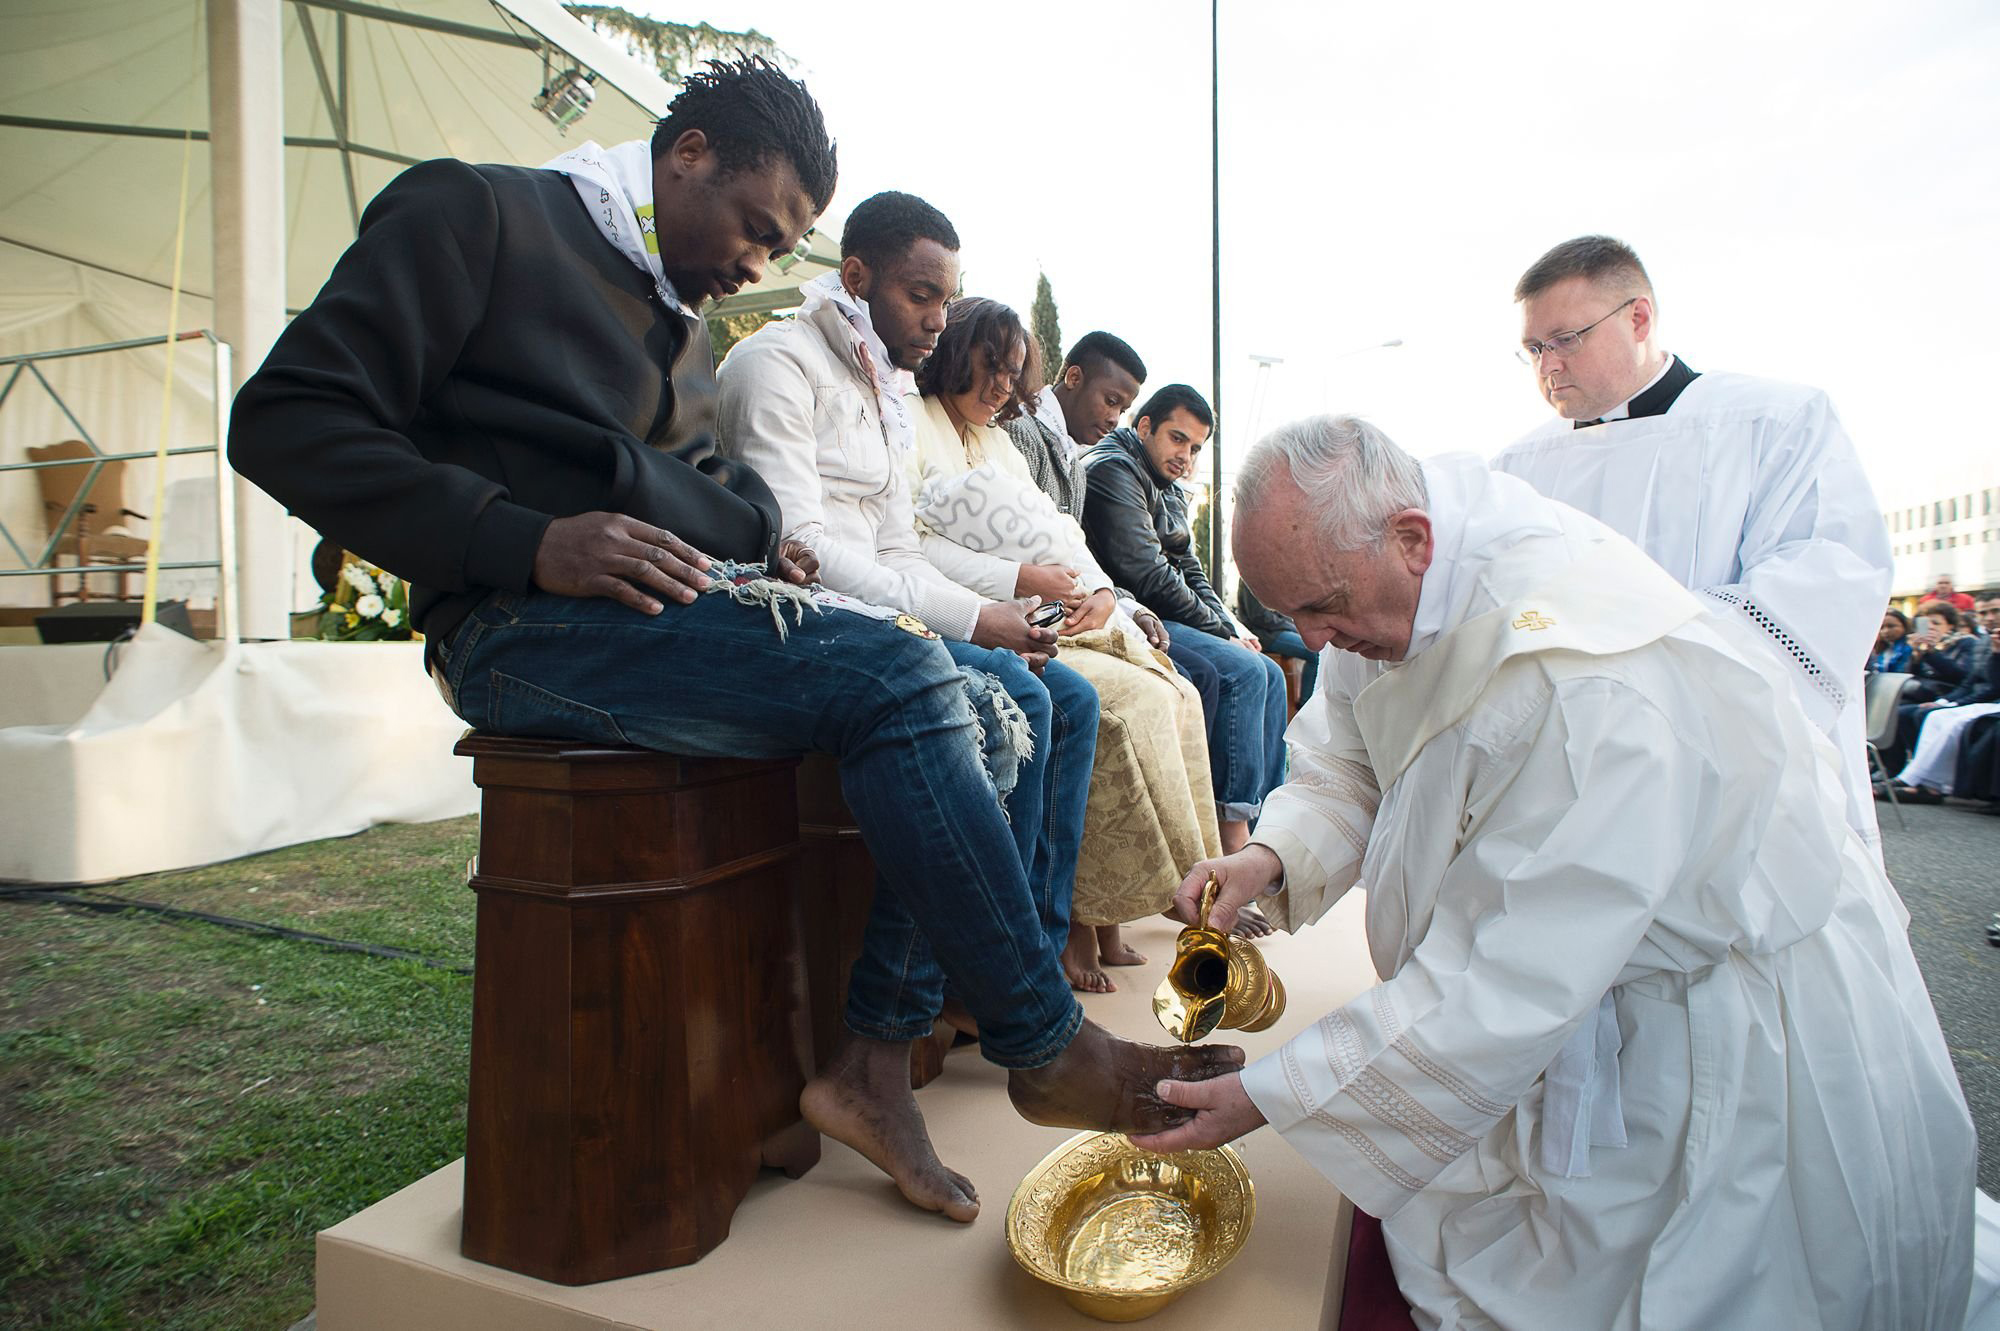 In this handout picture released by the Vatican Press Office, Pope Francis performs the foot-washing ritual at the Castelnuovo di Porto refugees center near Rome, Italy on March 24, 2016. Pope Francis washed the feet of 11 young asylum seekers and a worker at their reception centre to highlight the need for the international community to provide shelter to refugees.